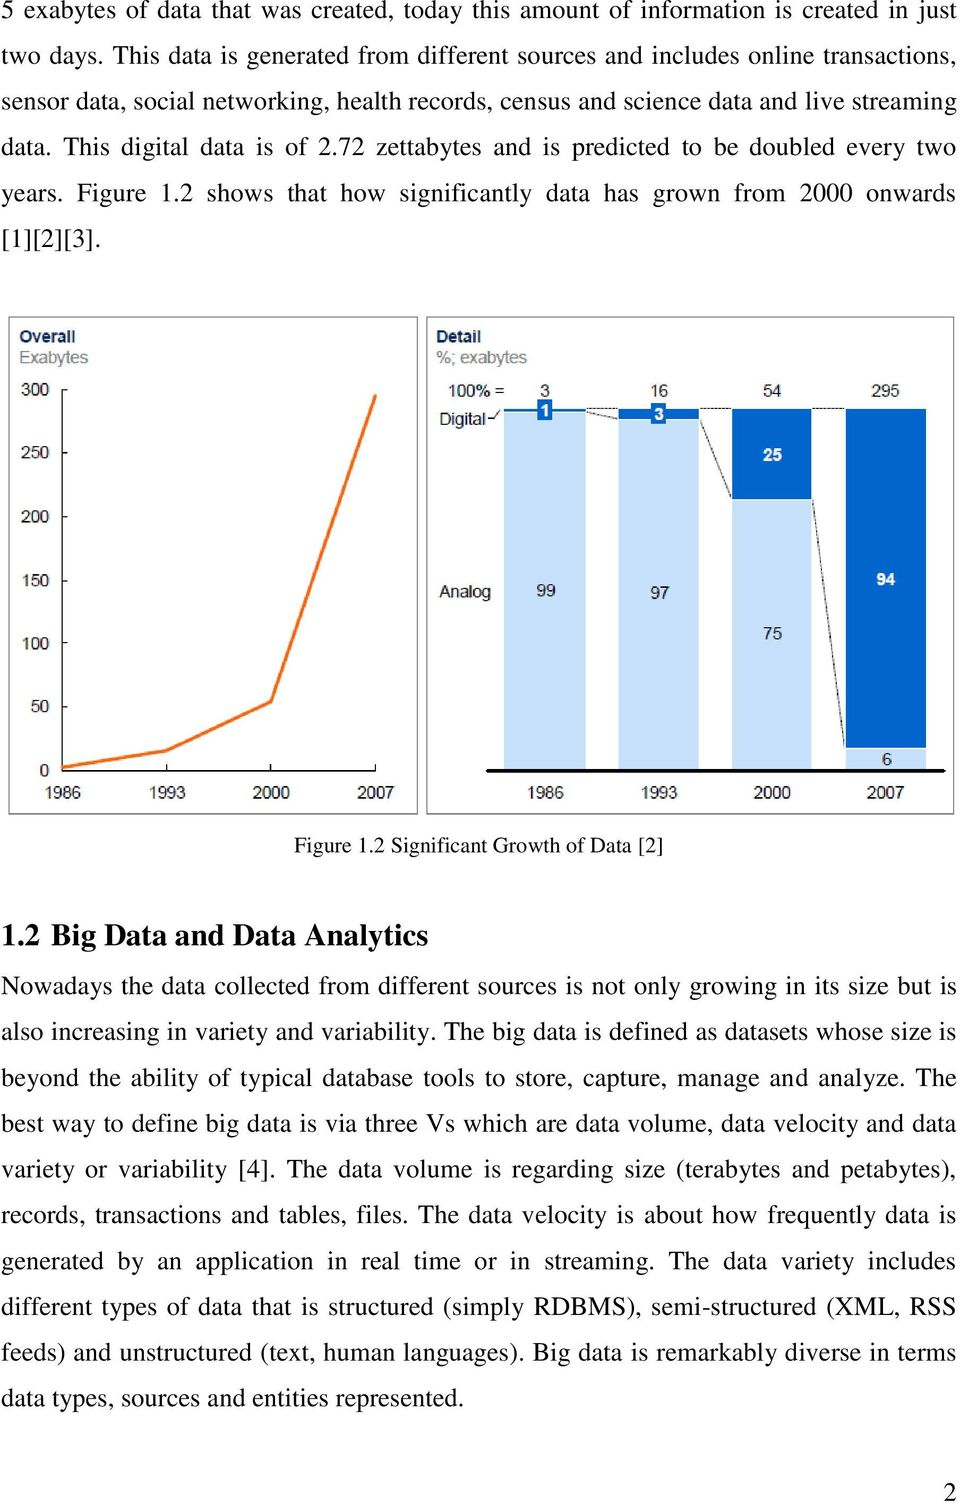 This digital data is of 2.72 zettabytes and is predicted to be doubled every two years. Figure 1.2 shows that how significantly data has grown from 2000 onwards [1][2][3]. Figure 1.2 Significant Growth of Data [2] 1.